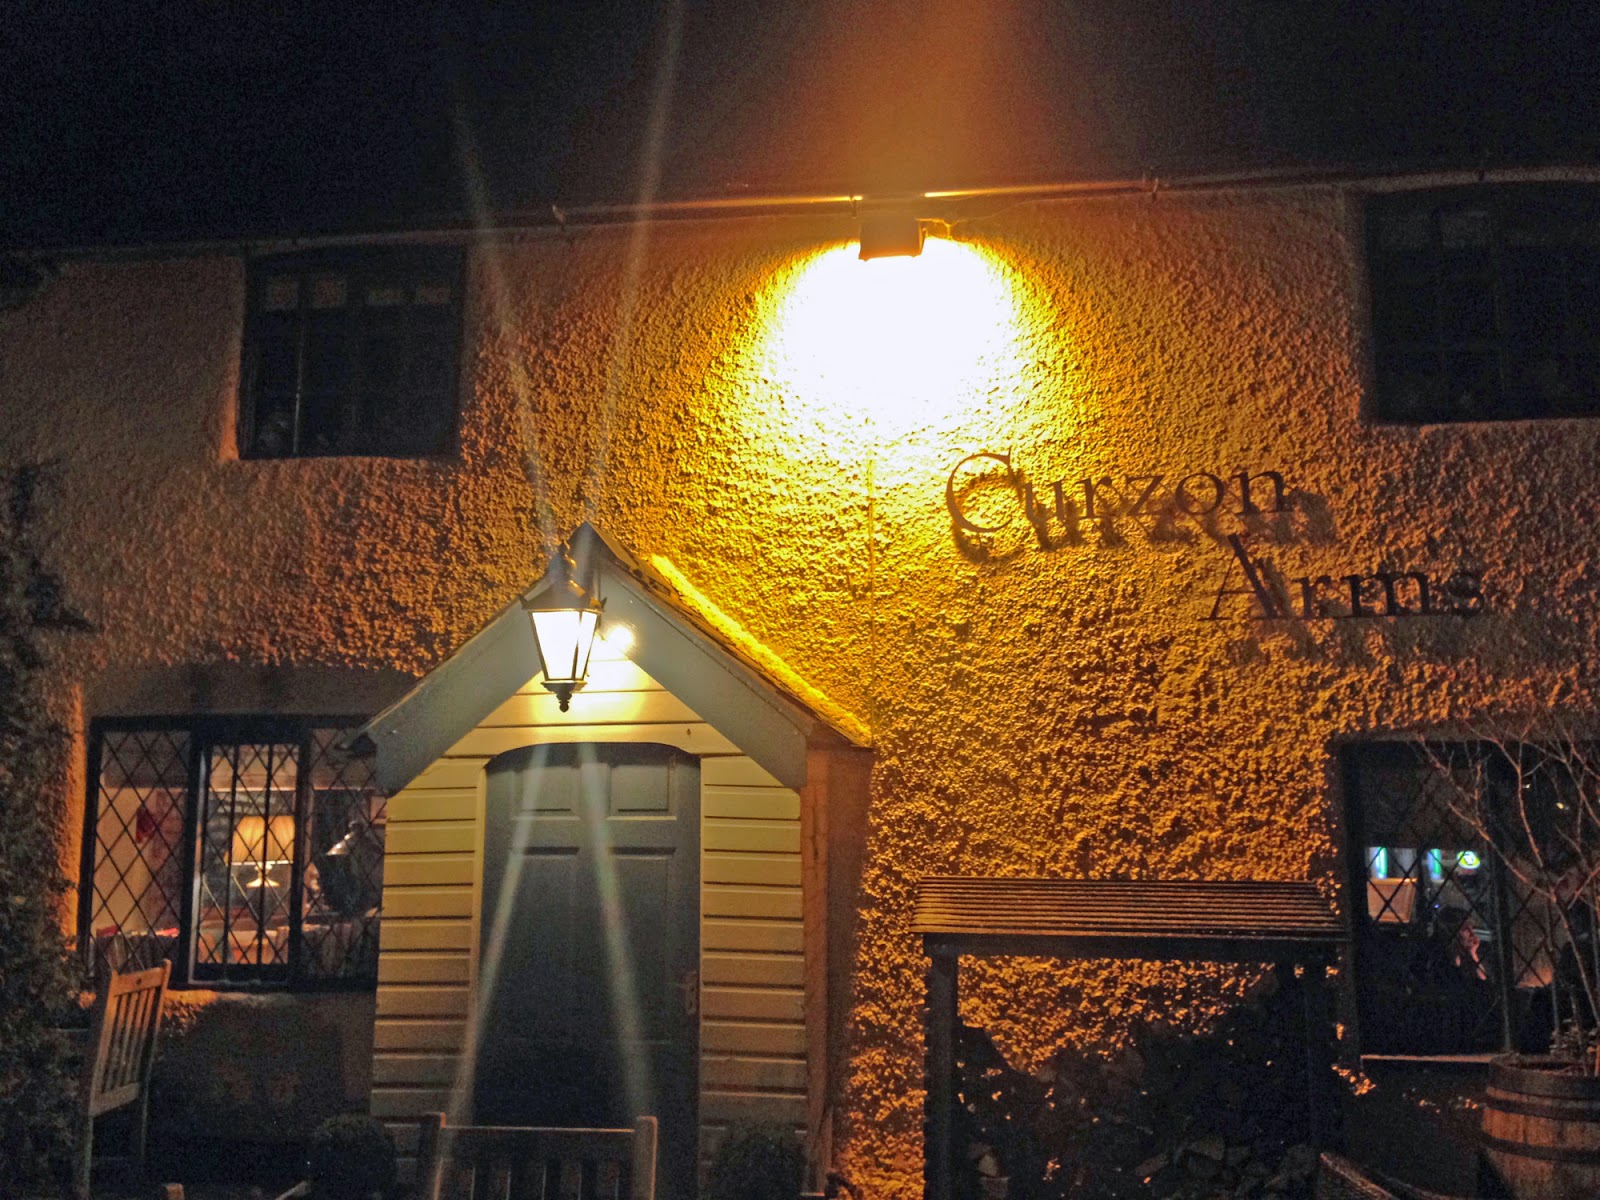 The Curzon Arms at night